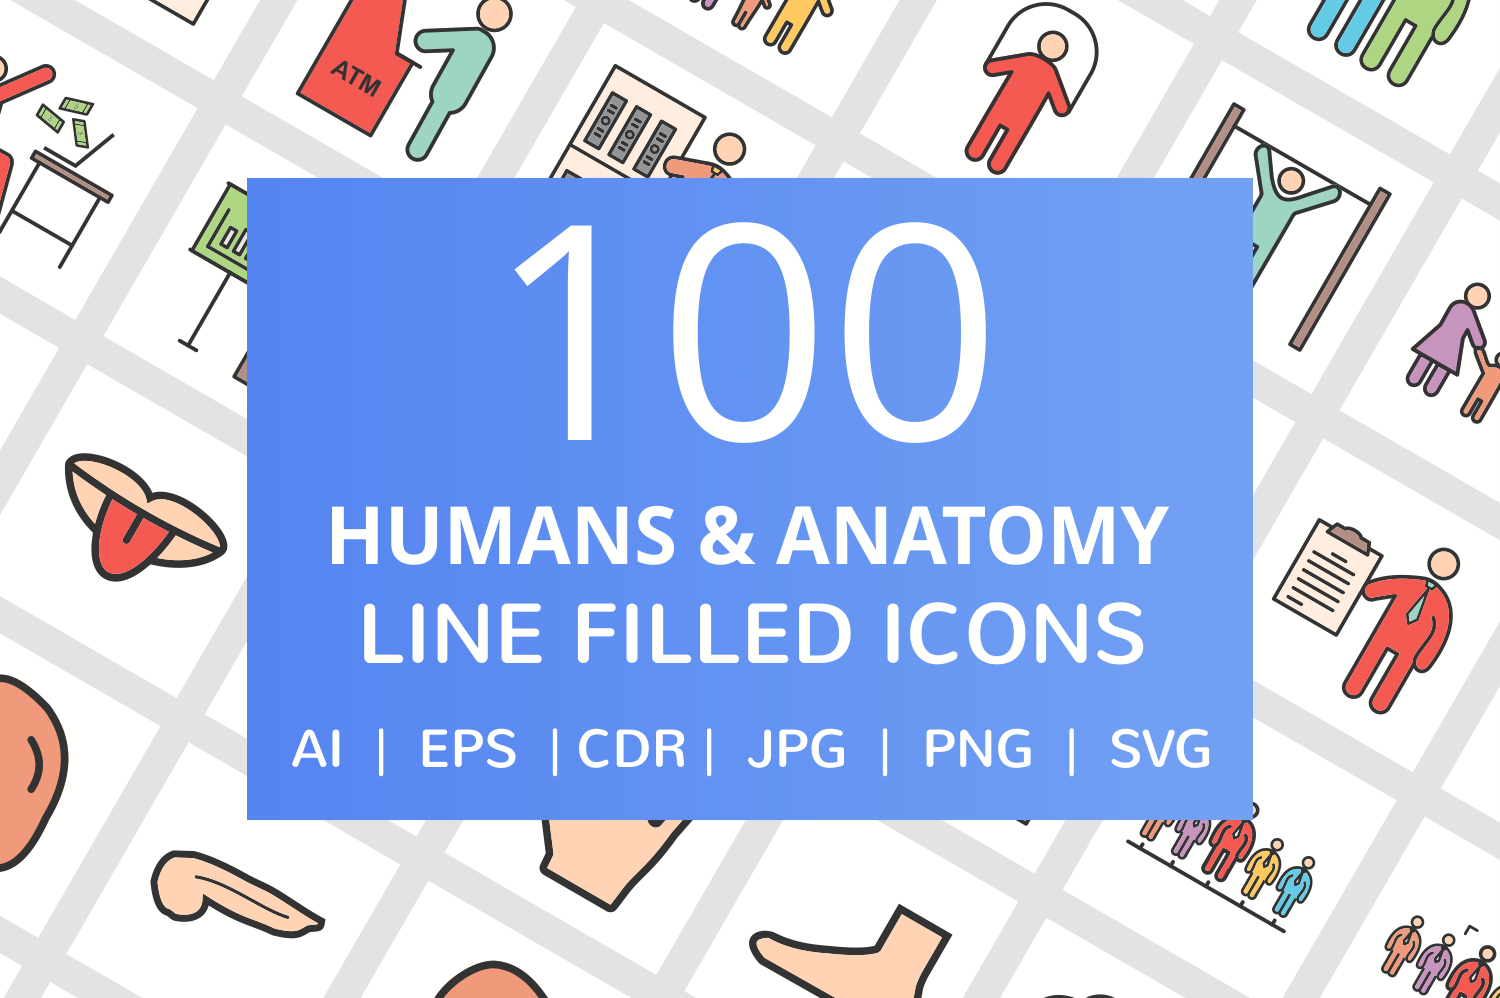 100 Humans & Anatomy Filled Line Icons example image 1